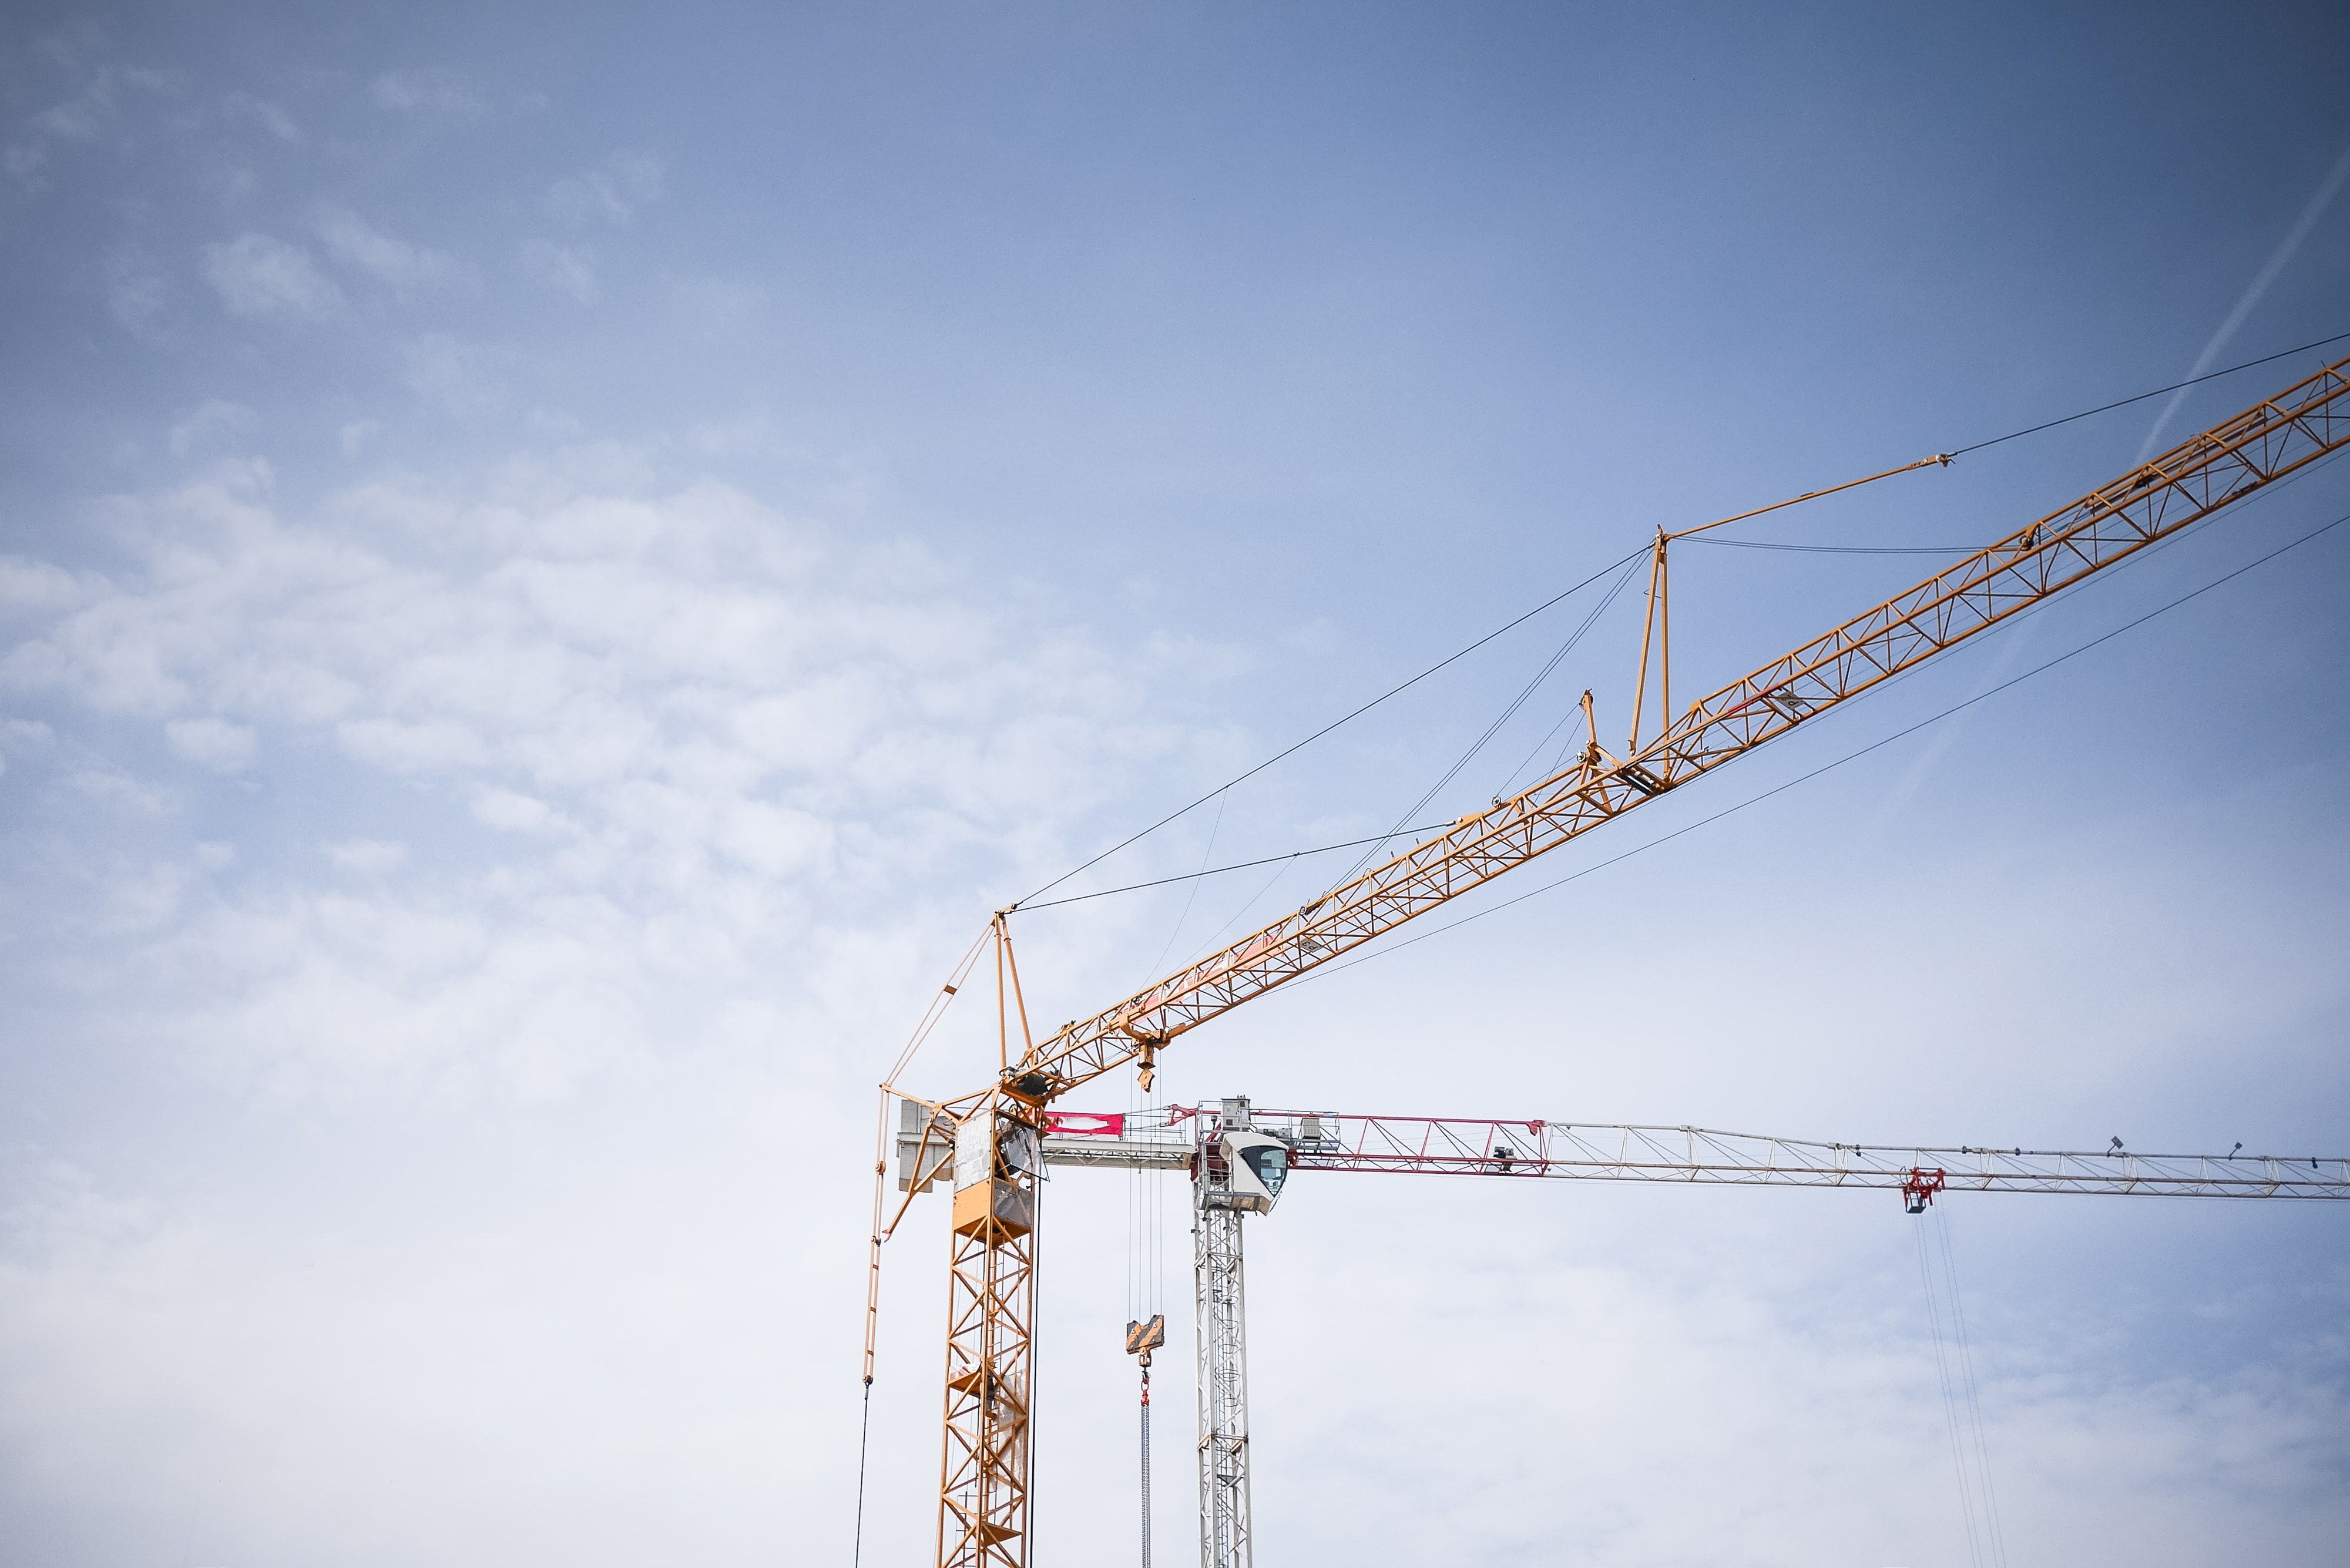 big-lifting-cranes-at-construction-site-picjumbo-com-min